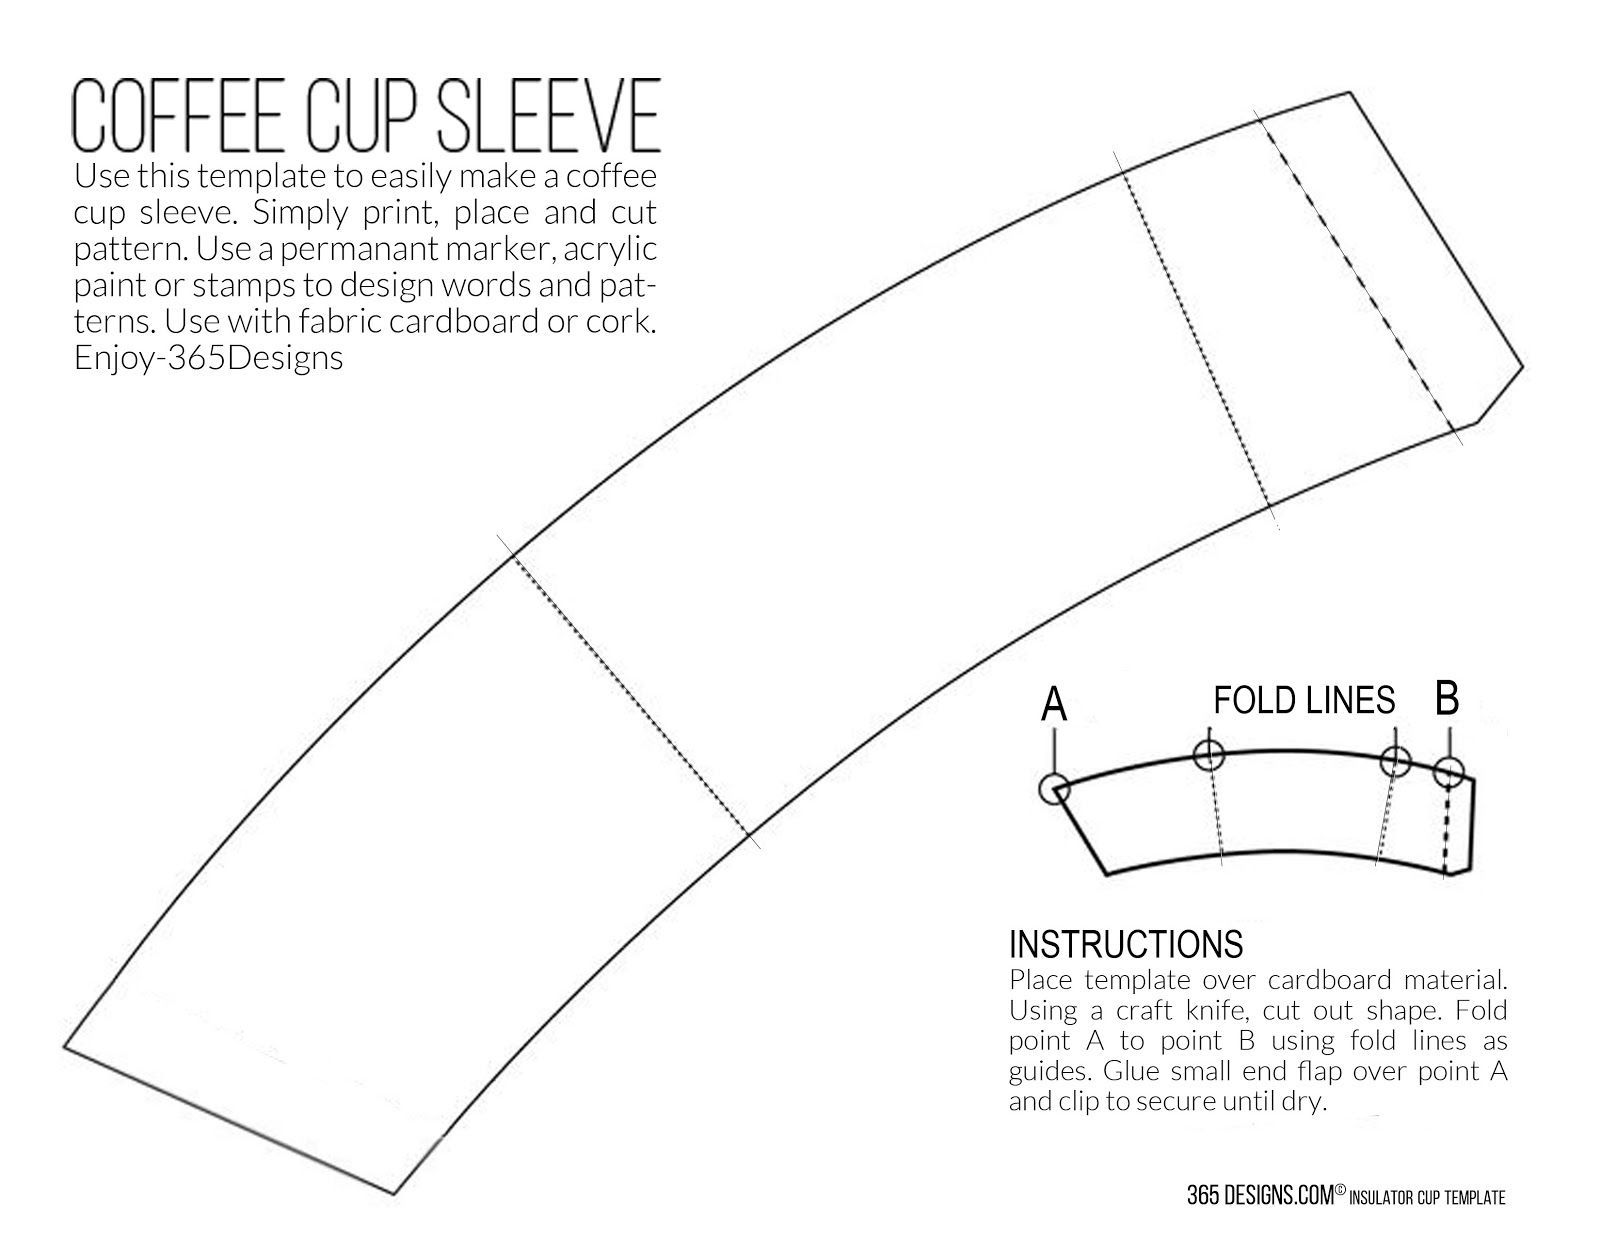 365 designs new mccafe single brew coffee with printable cup sleeve